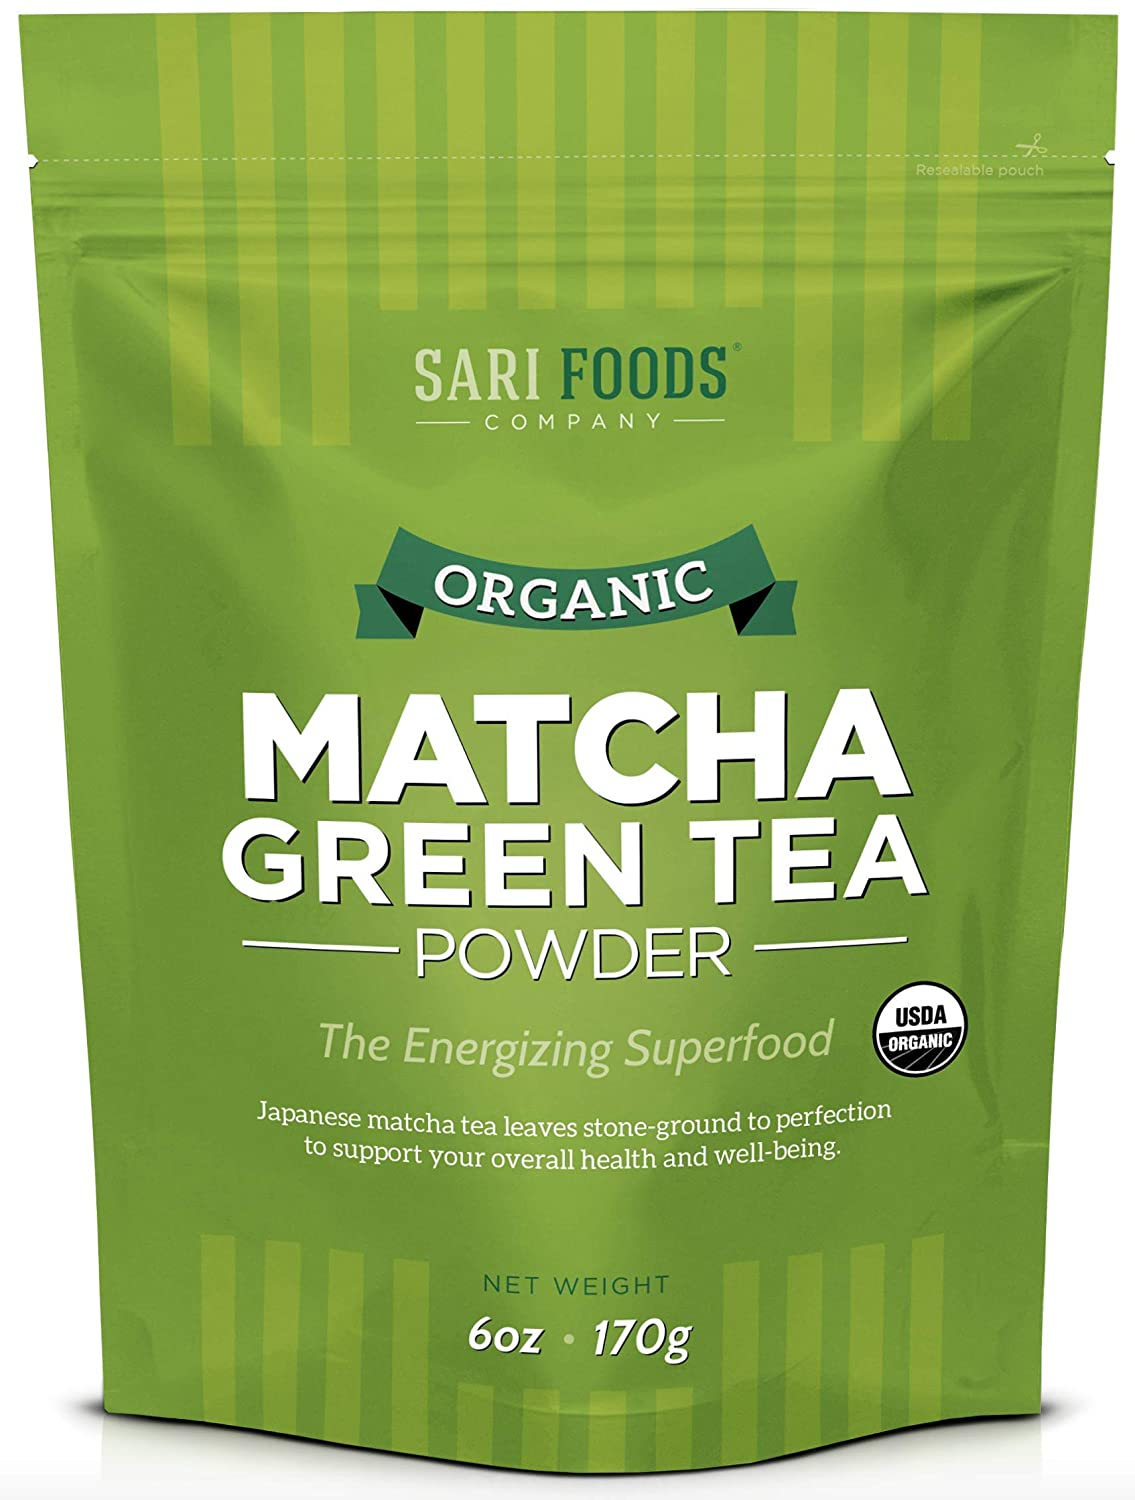 Organic Japanese Matcha Green Tea Powder:6 Ounce. Natural Plant Based Superfood:Increase Energy, Focus & Metabolism, Fight Aging, Burn Fat & Relieve Stress With Antioxidants, Polyphenols & Amino Acids